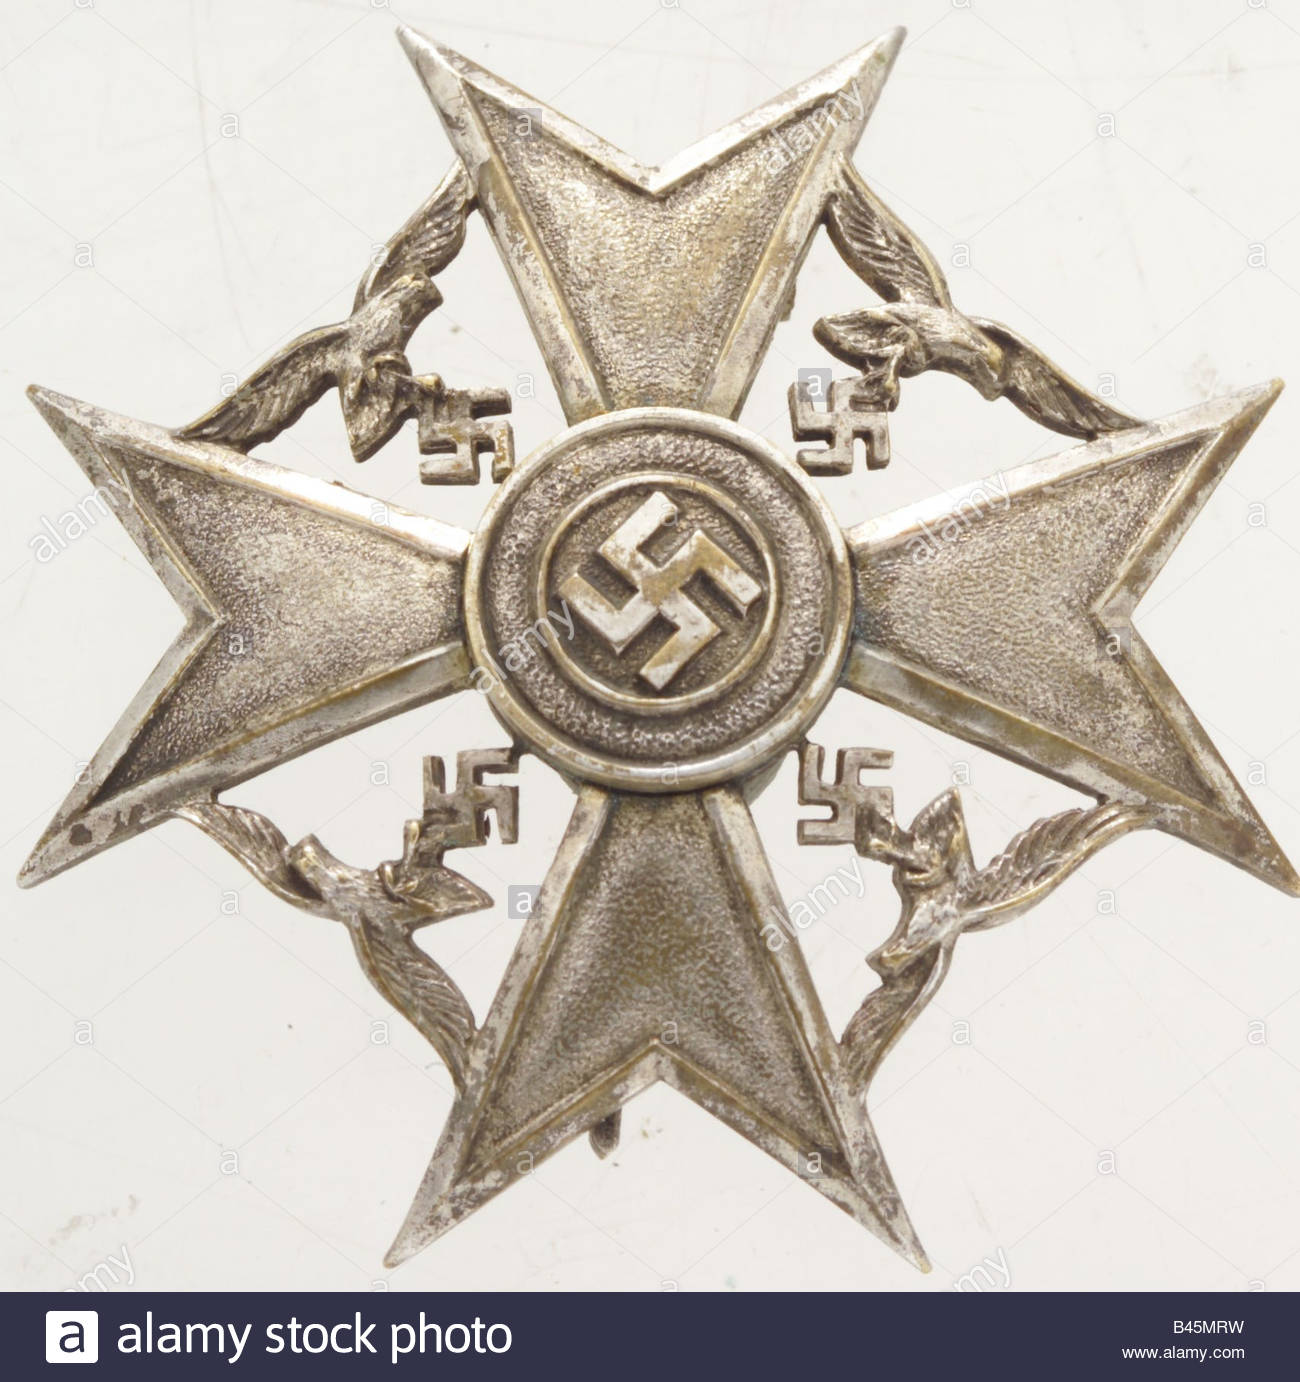 decorations-nazi-germany-german-empire-spanienkreuz-spanish-cross-B45MRW.jpg